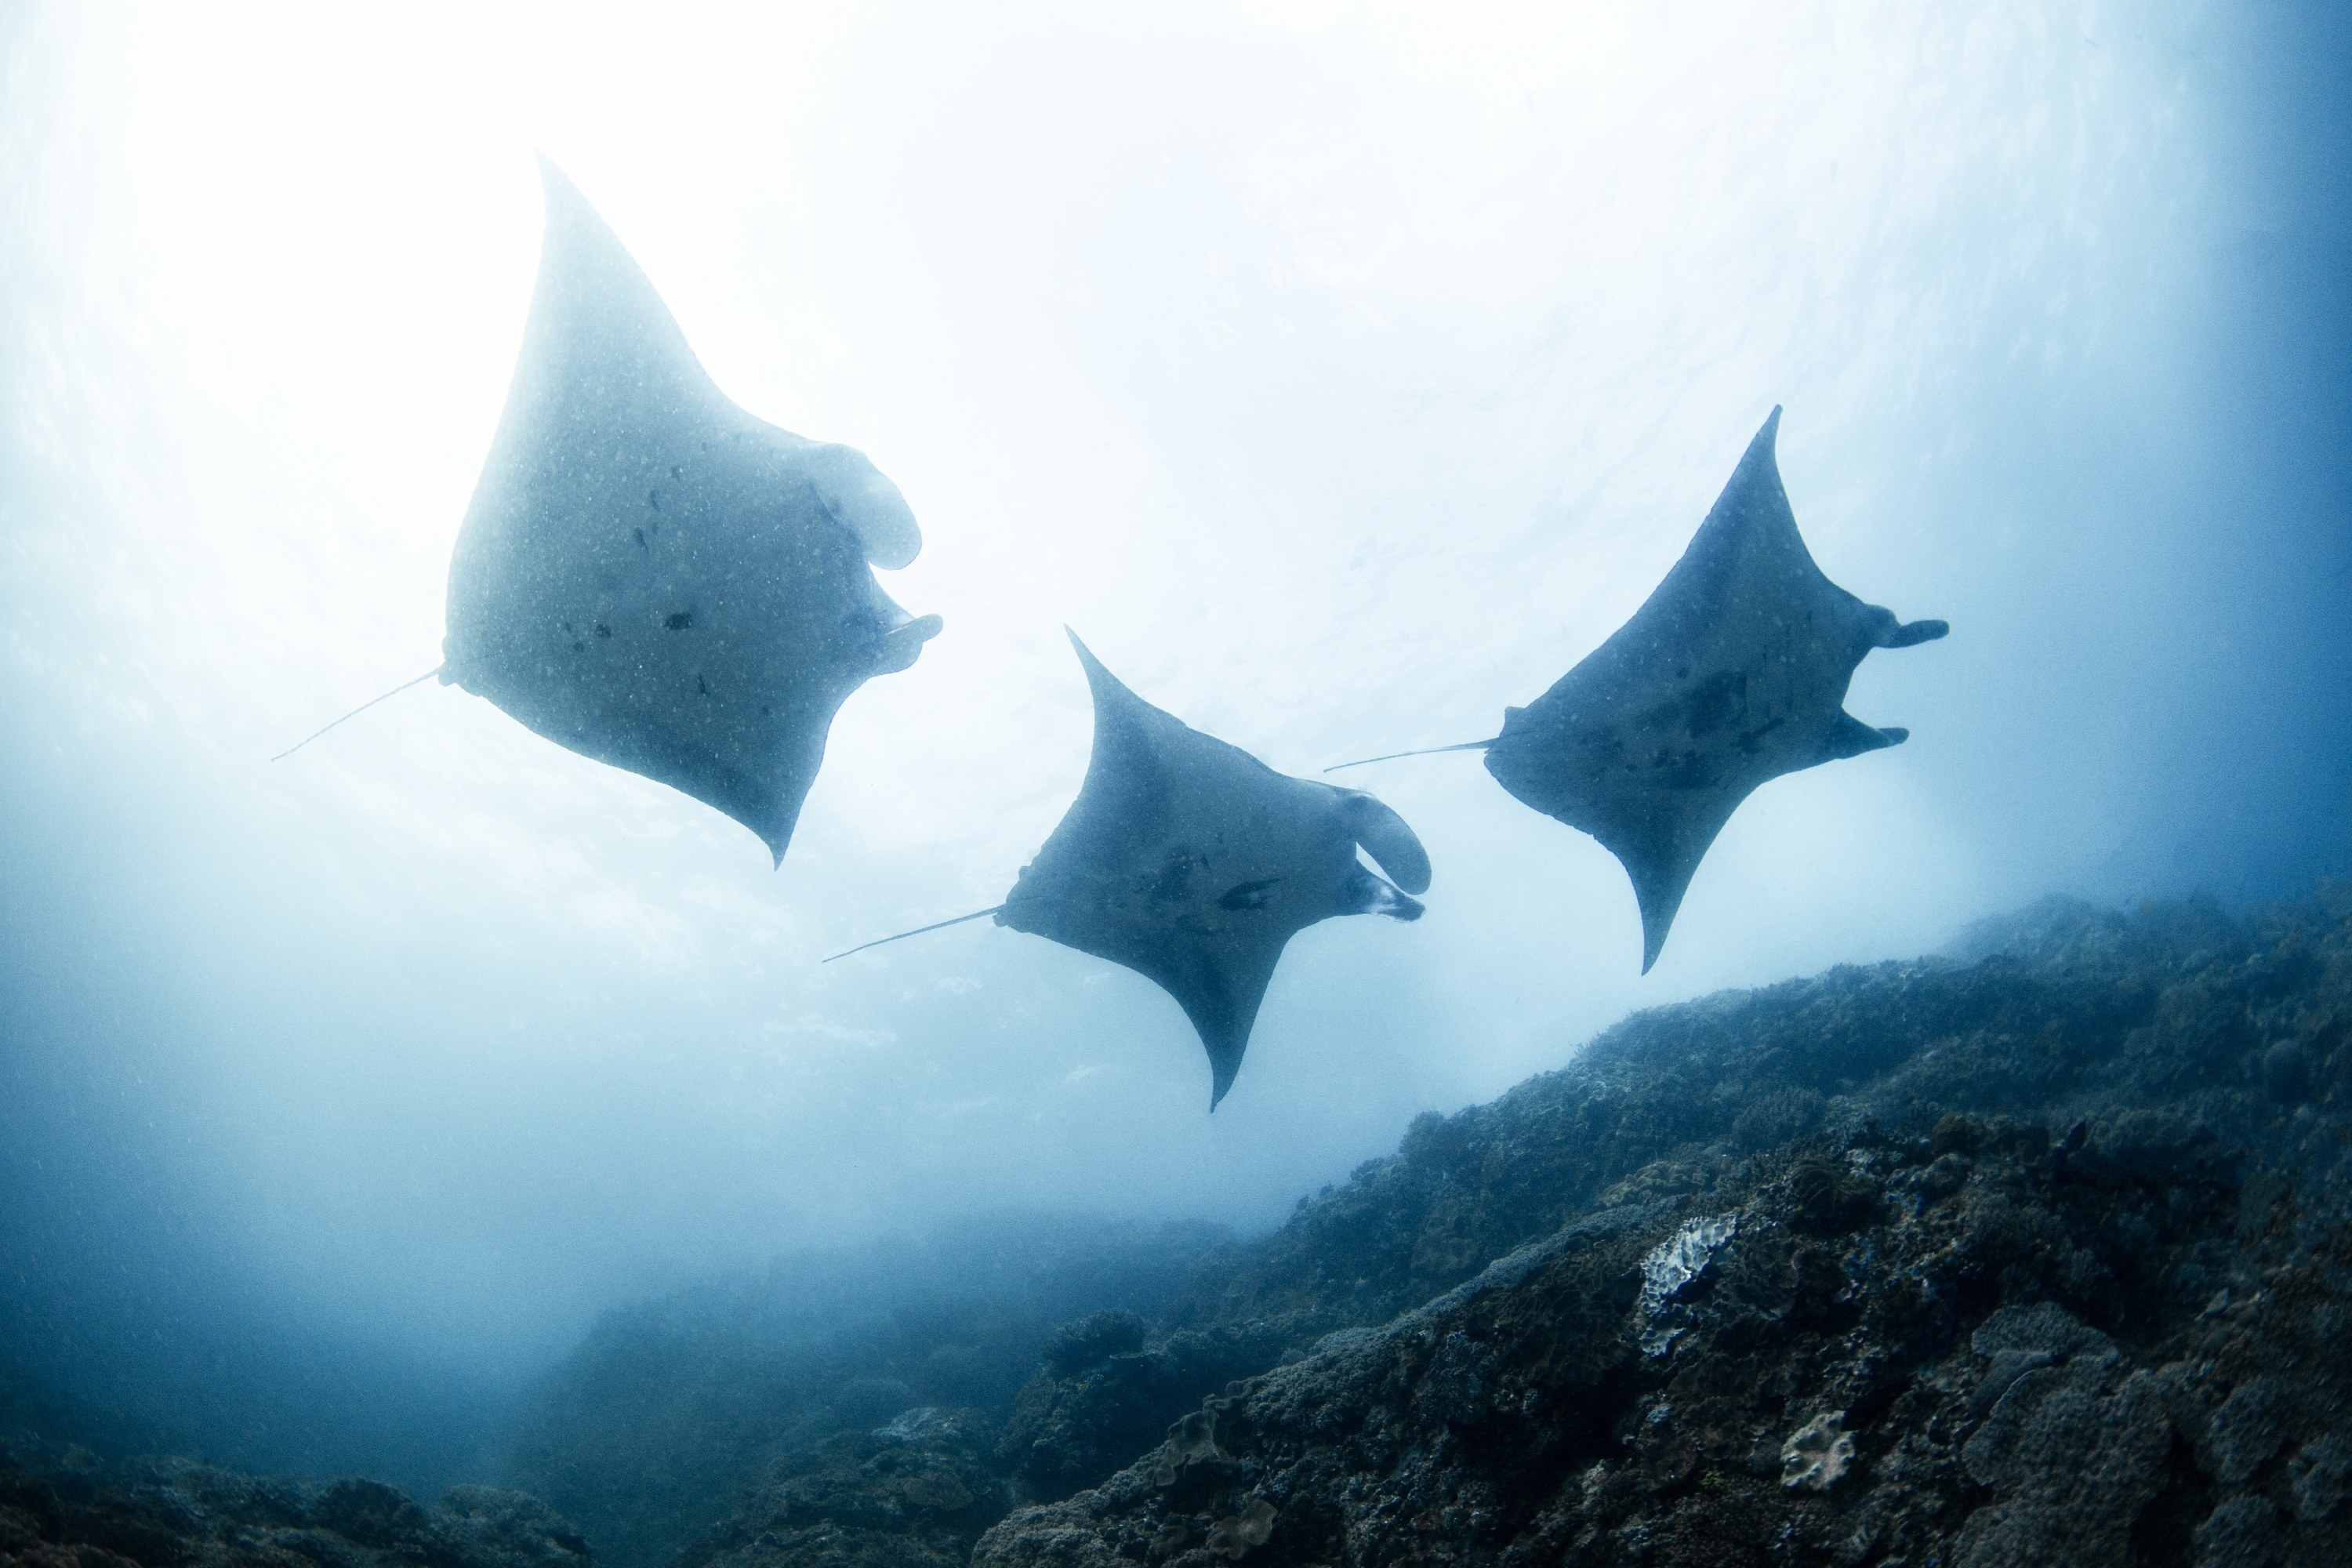 Three manta rays are silhouetted by the sunlight